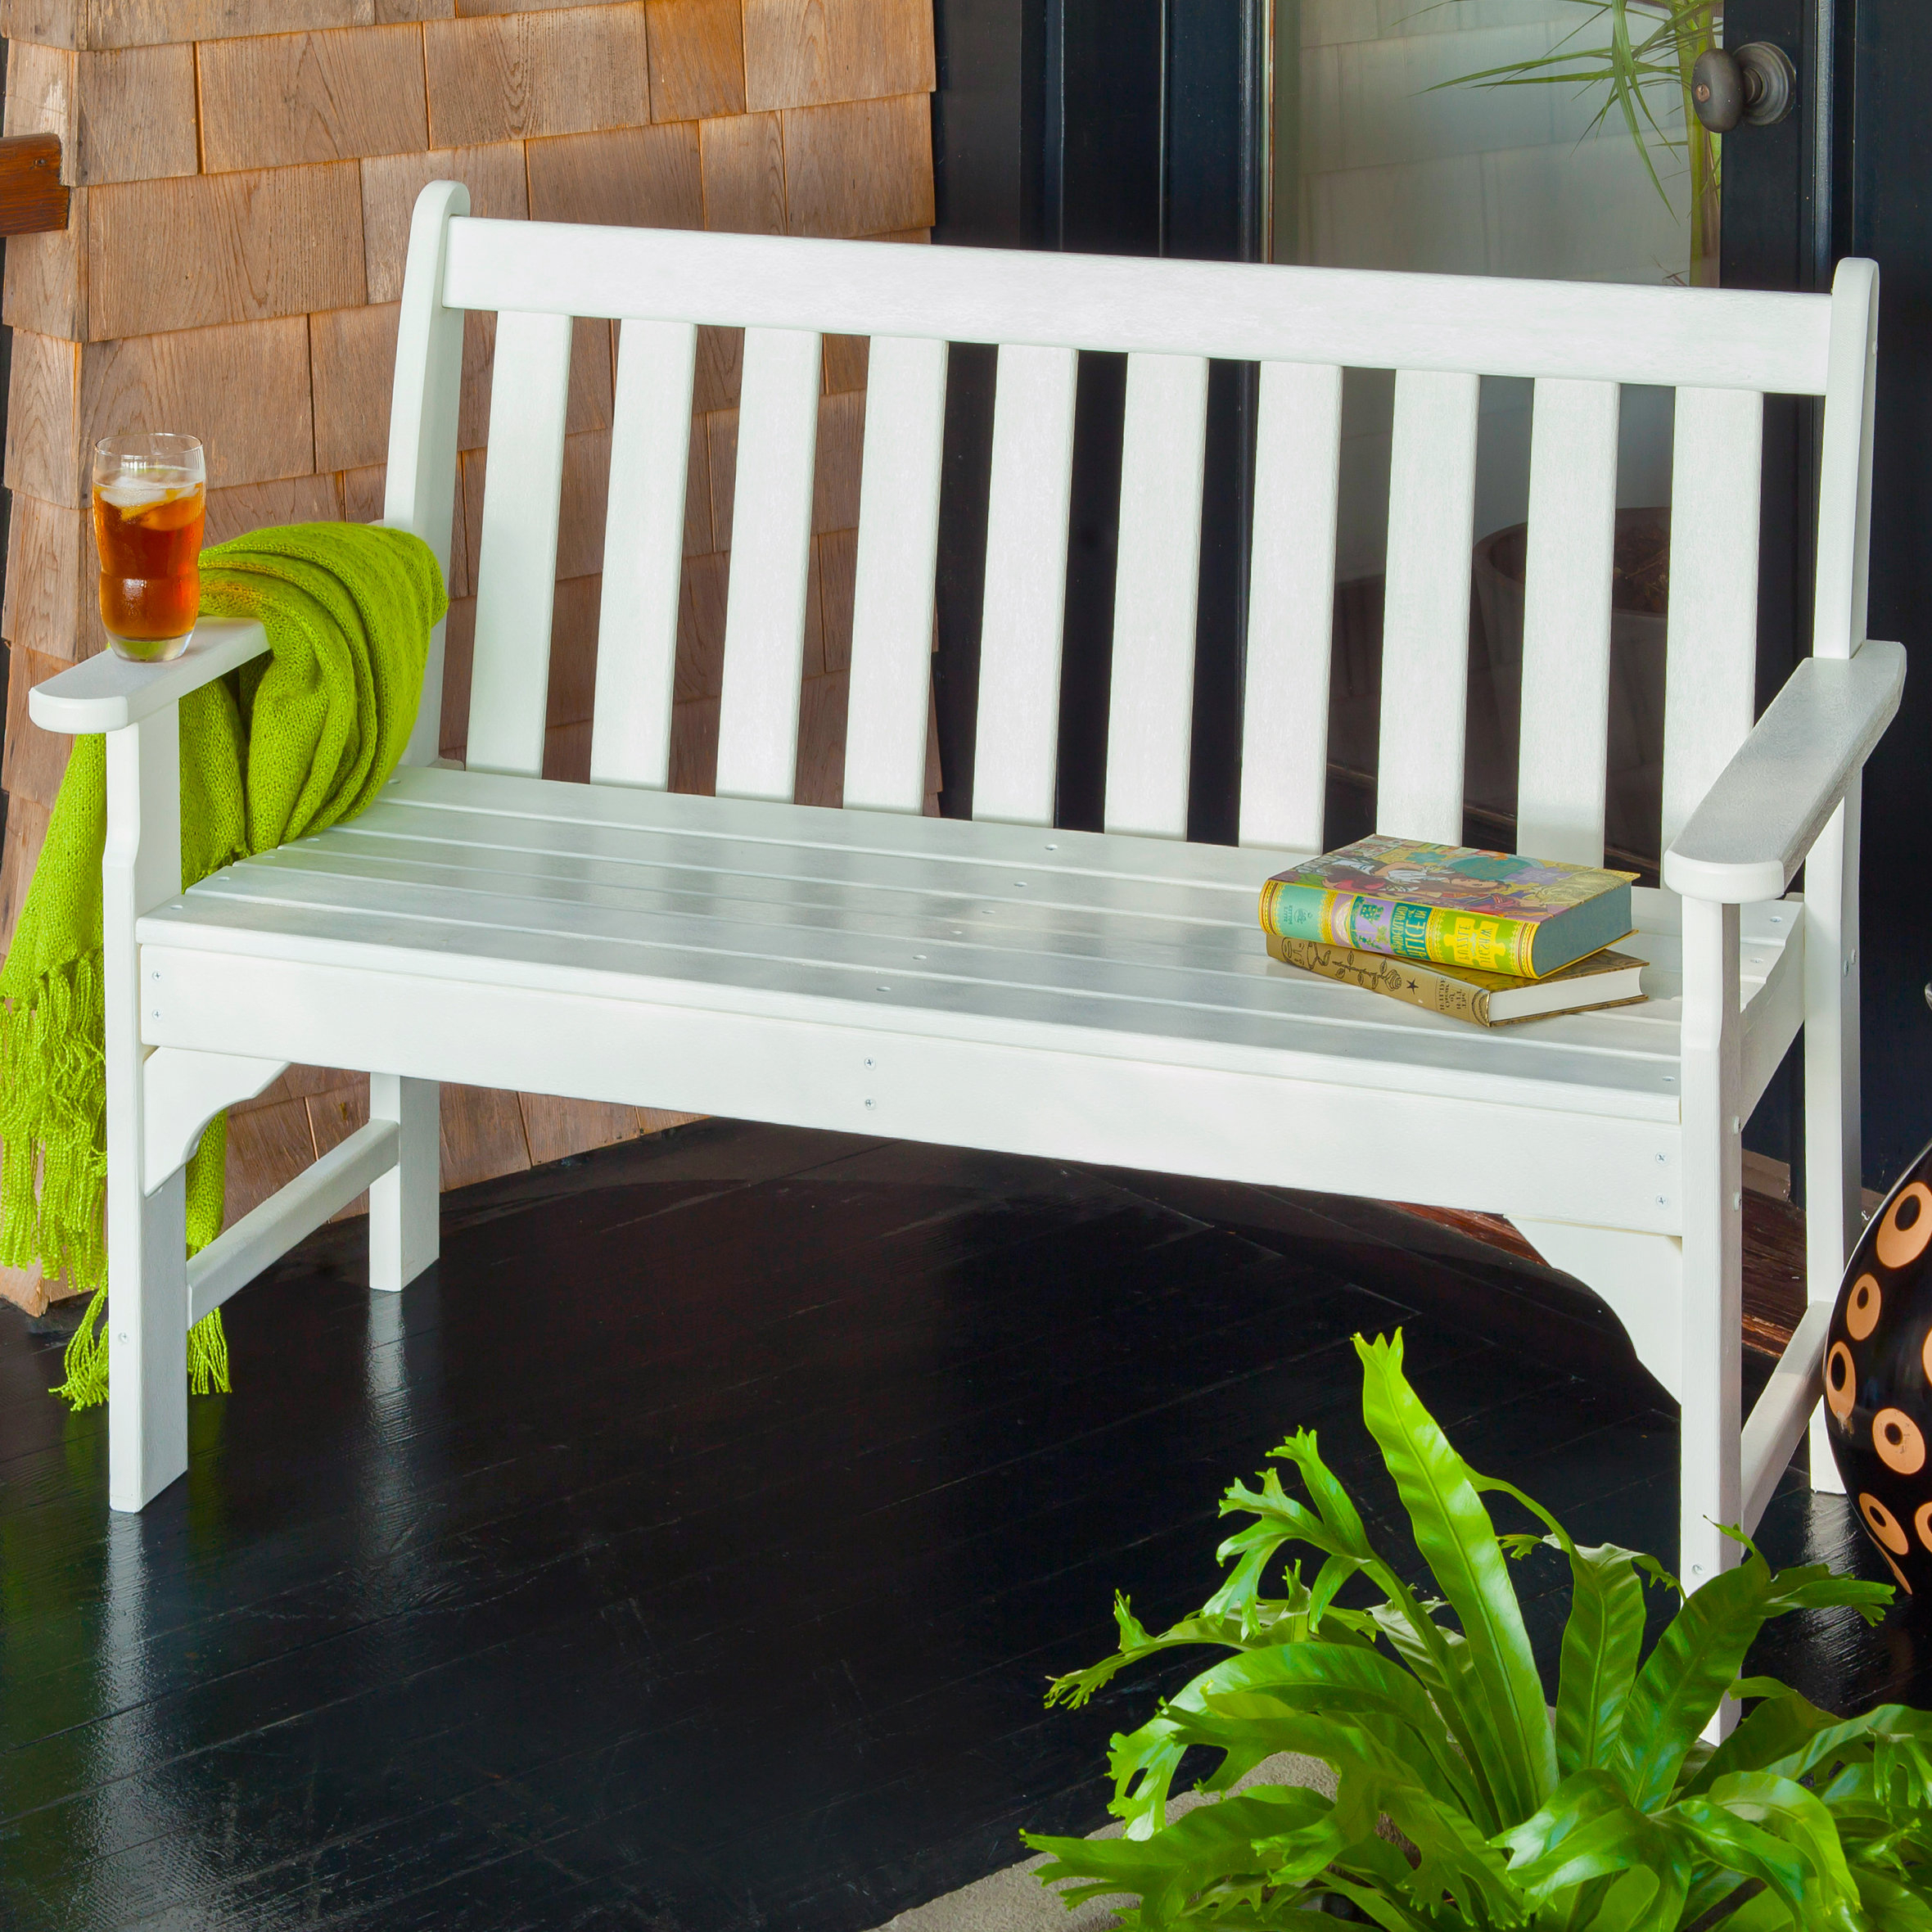 Bence Plastic Outdoor Garden Benches Regarding Latest Polywood® Vineyard Plastic Garden Bench (View 16 of 25)